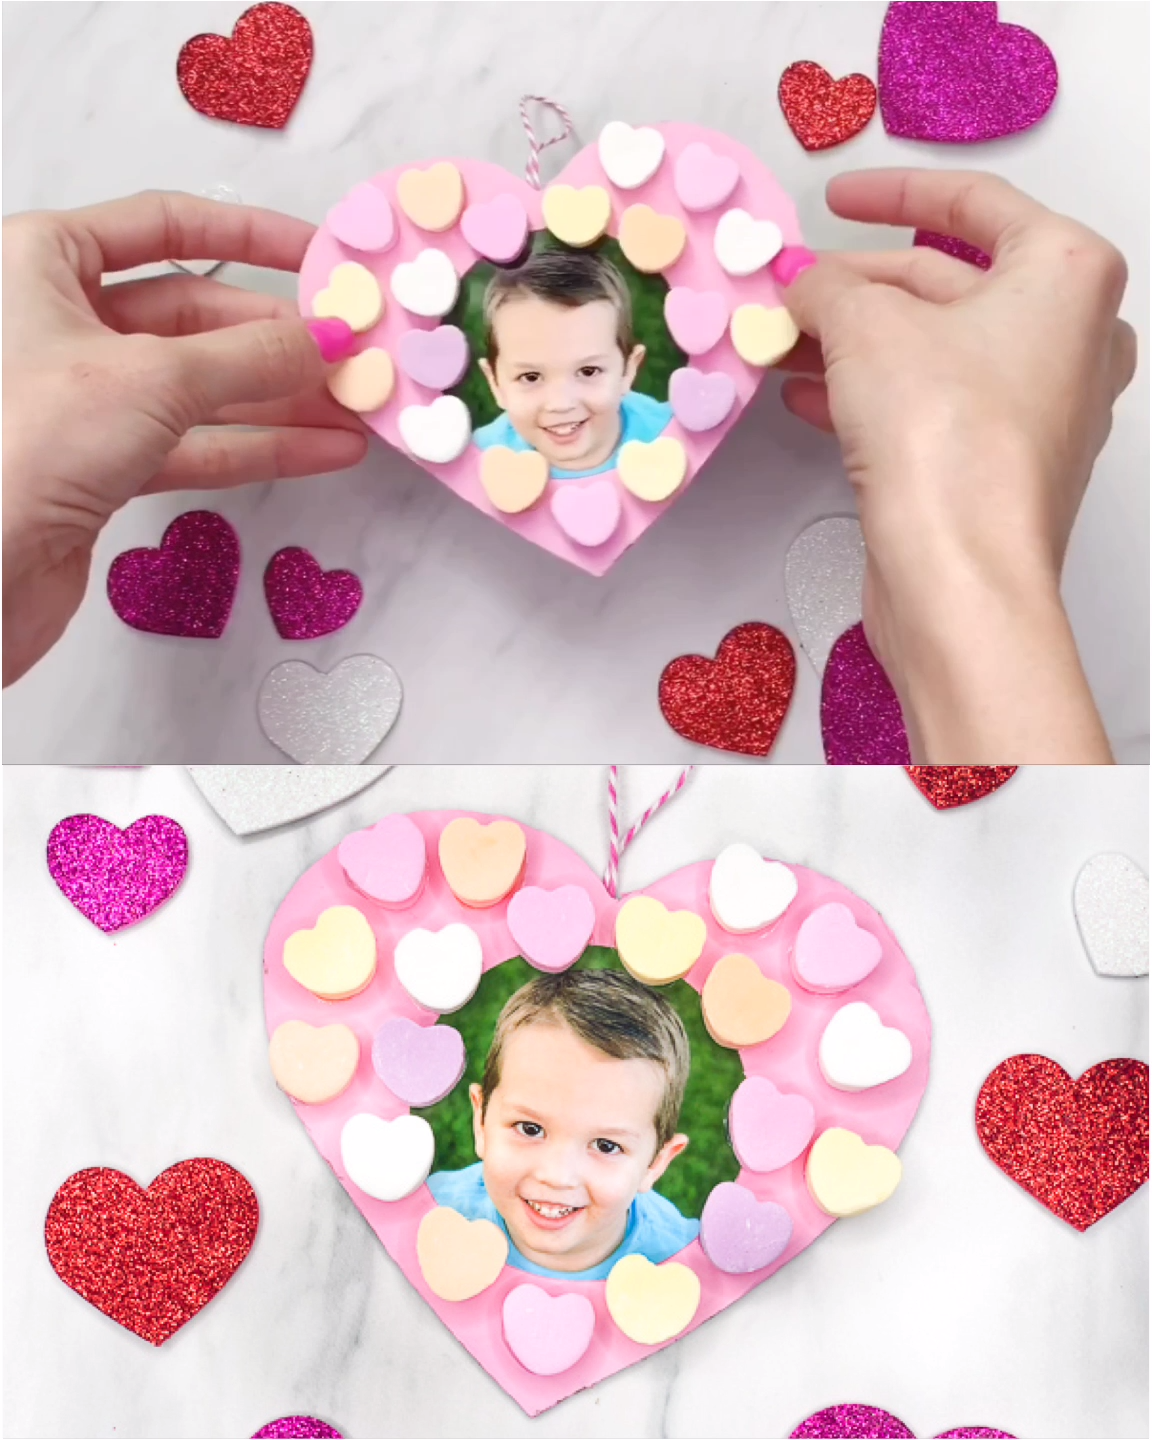 Candy Heart Valentine Craft For Kids In